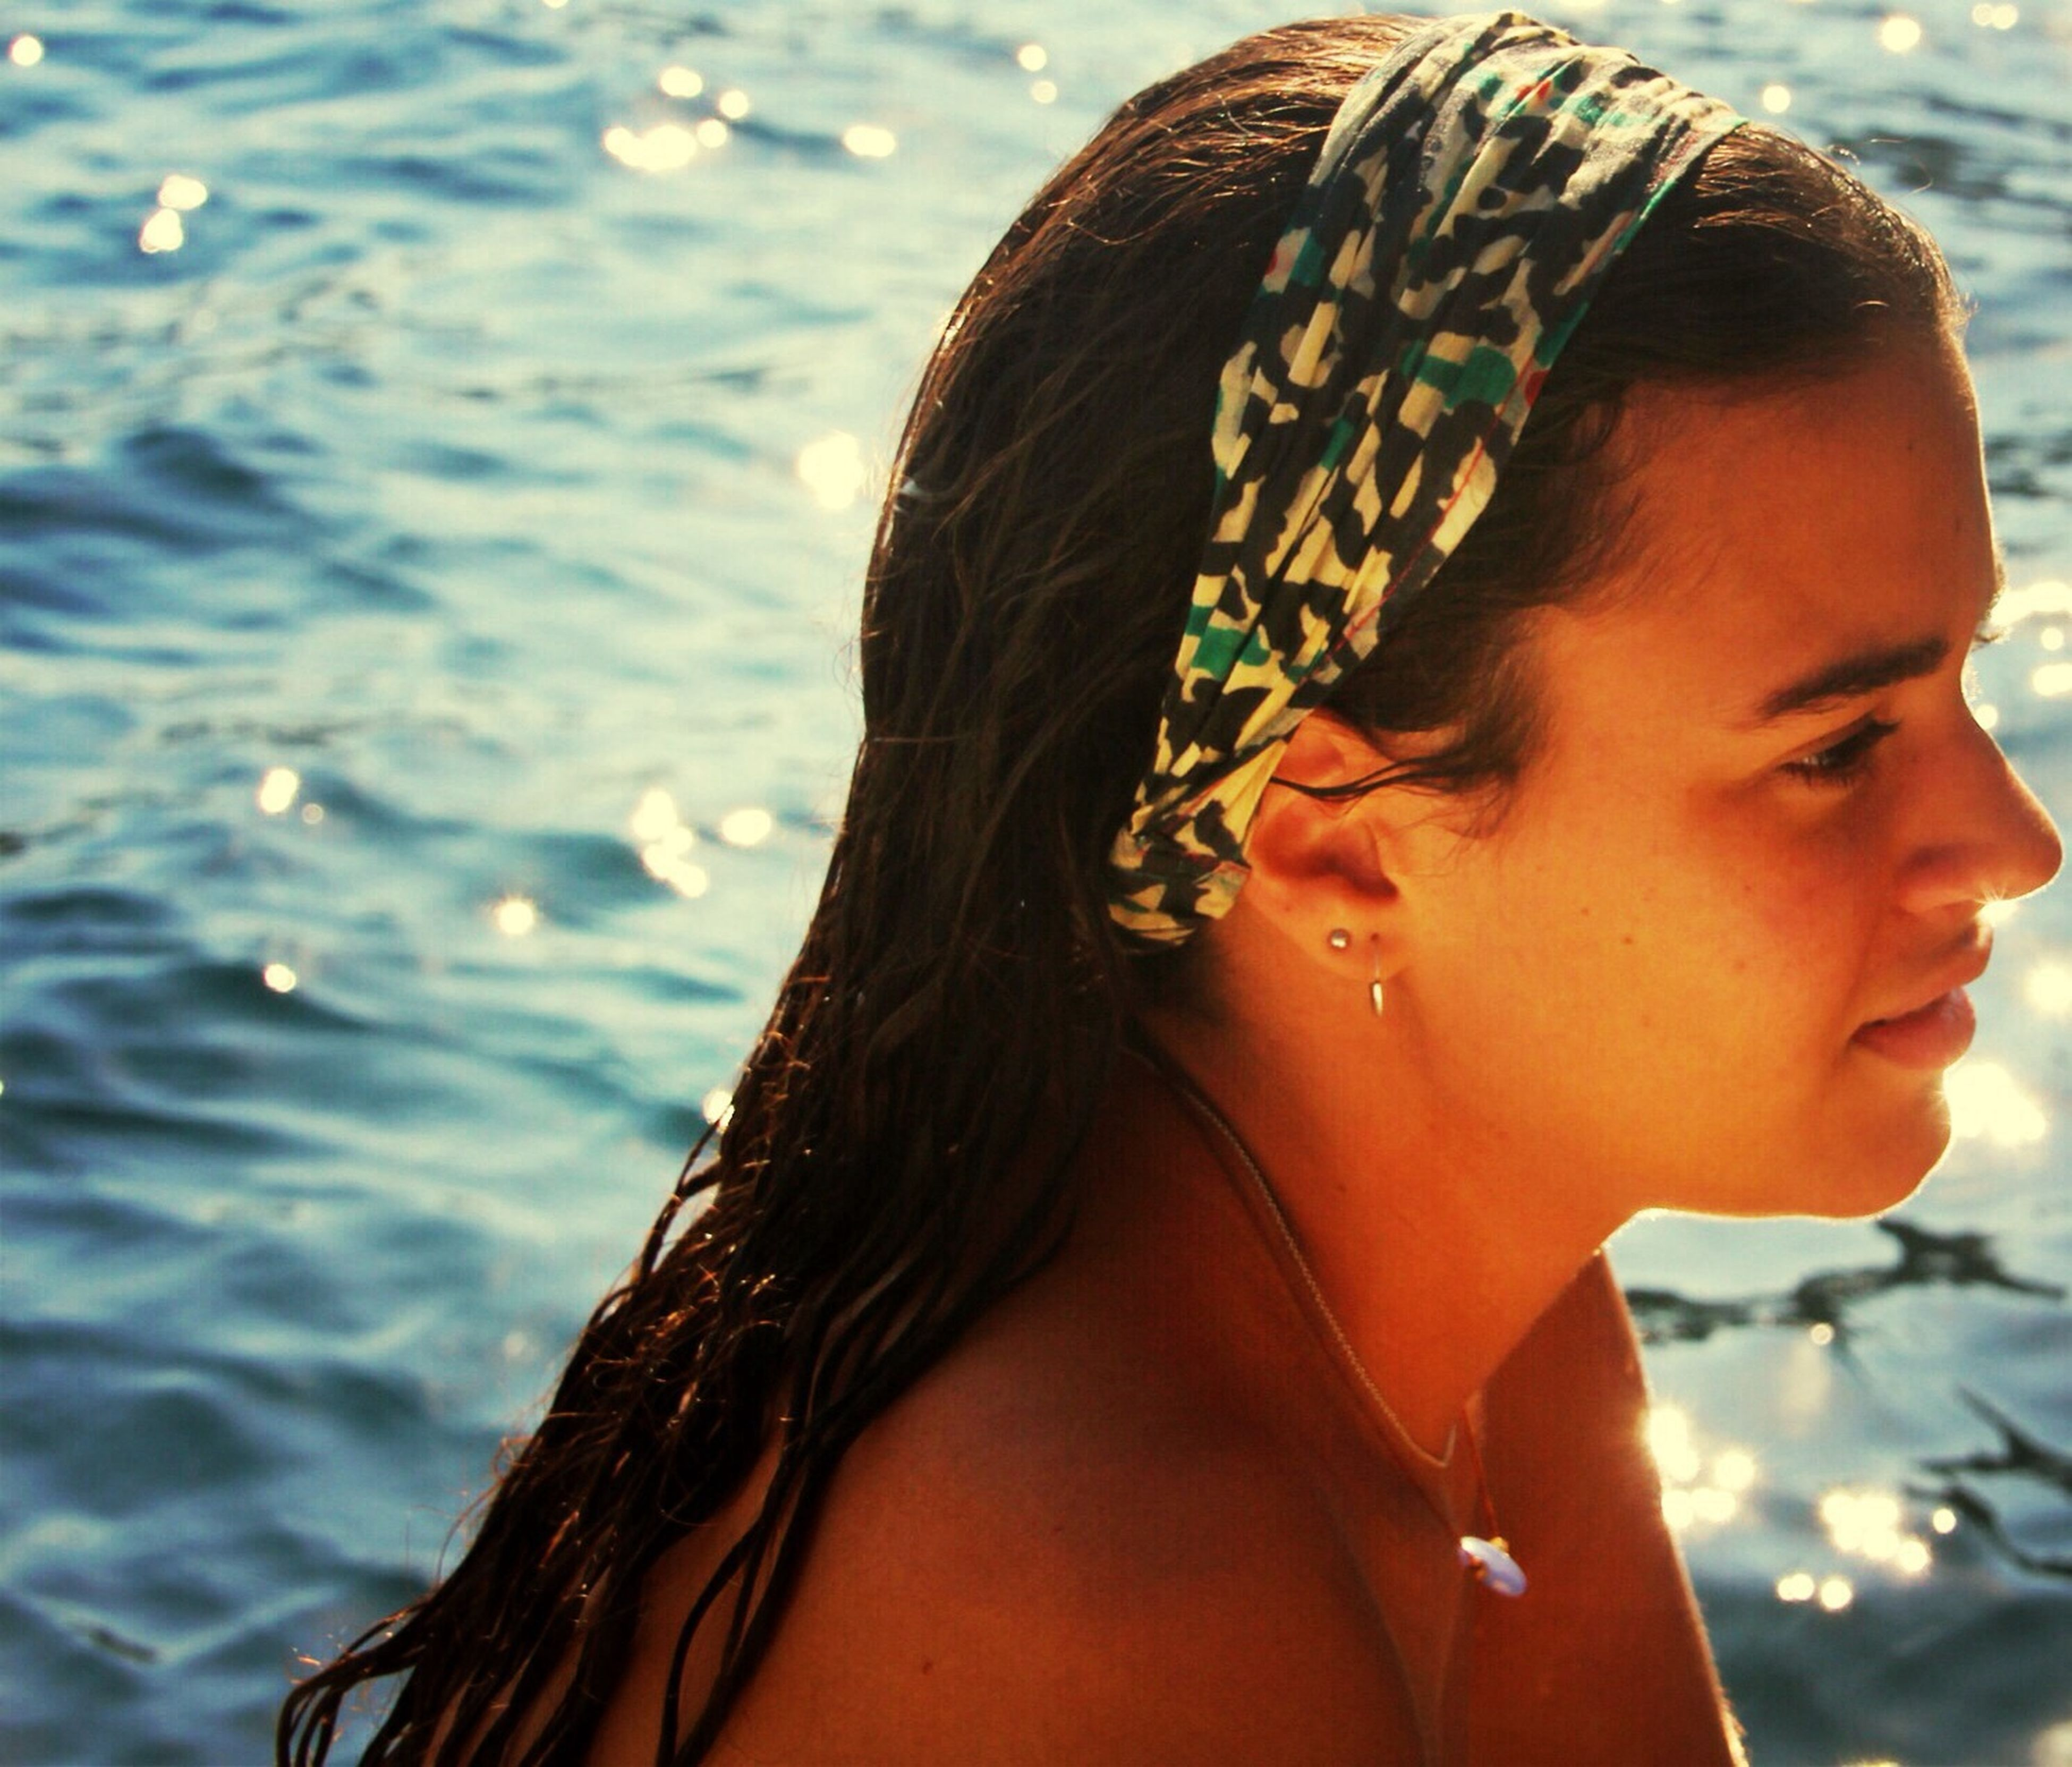 headshot, focus on foreground, young adult, close-up, water, person, lifestyles, leisure activity, young women, portrait, sea, human face, head and shoulders, looking at camera, outdoors, day, front view, side view